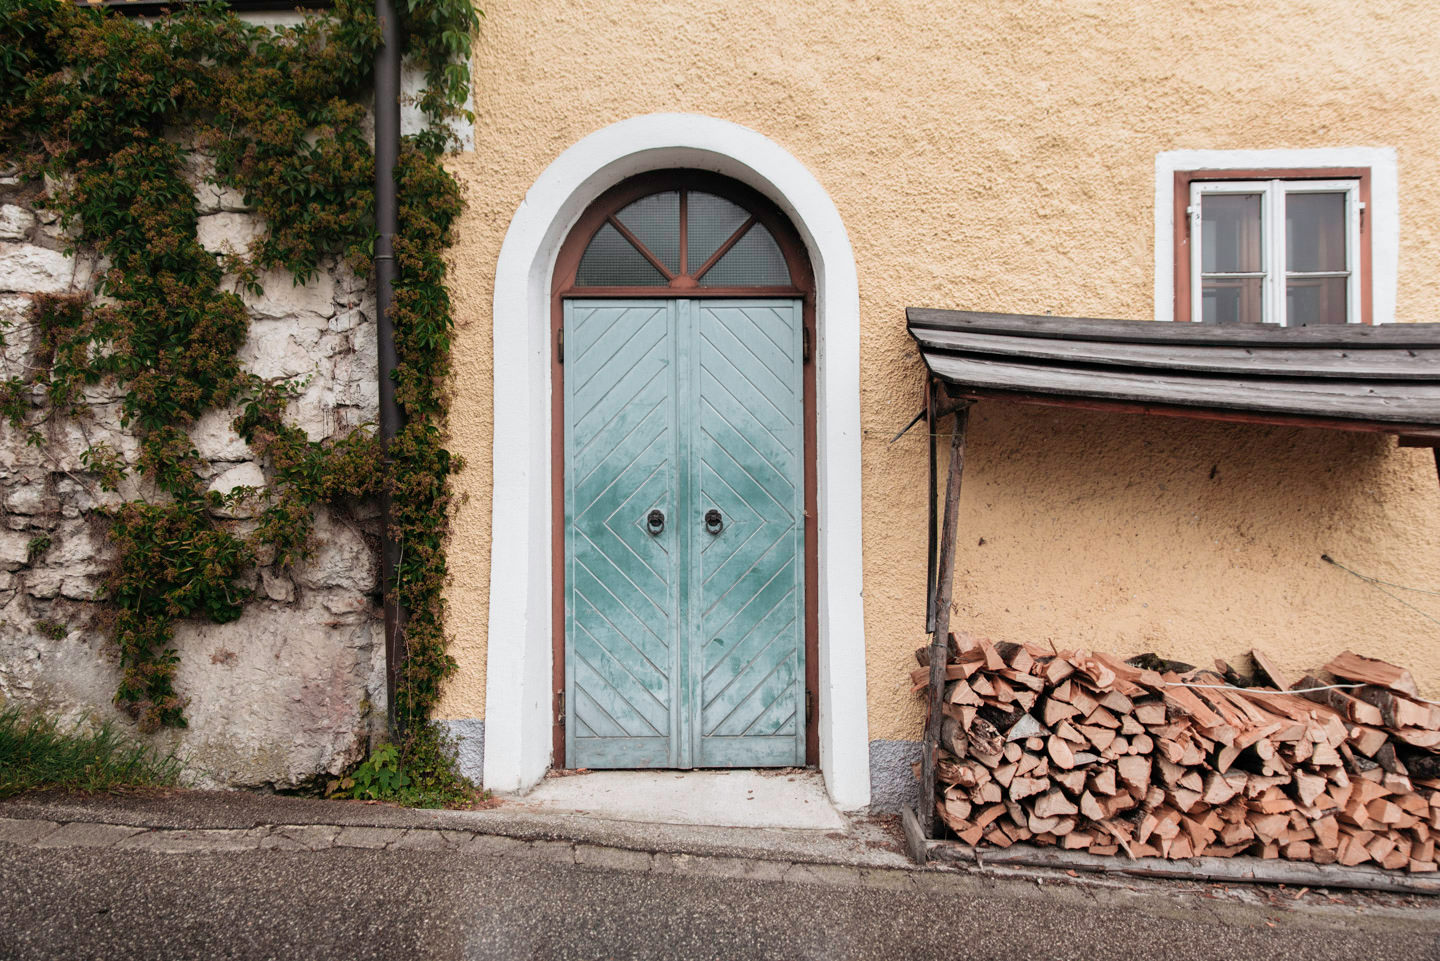 Blog-Mode-And-The-City-Lifestyle-Roadtrip-Allemagne-Autriche22